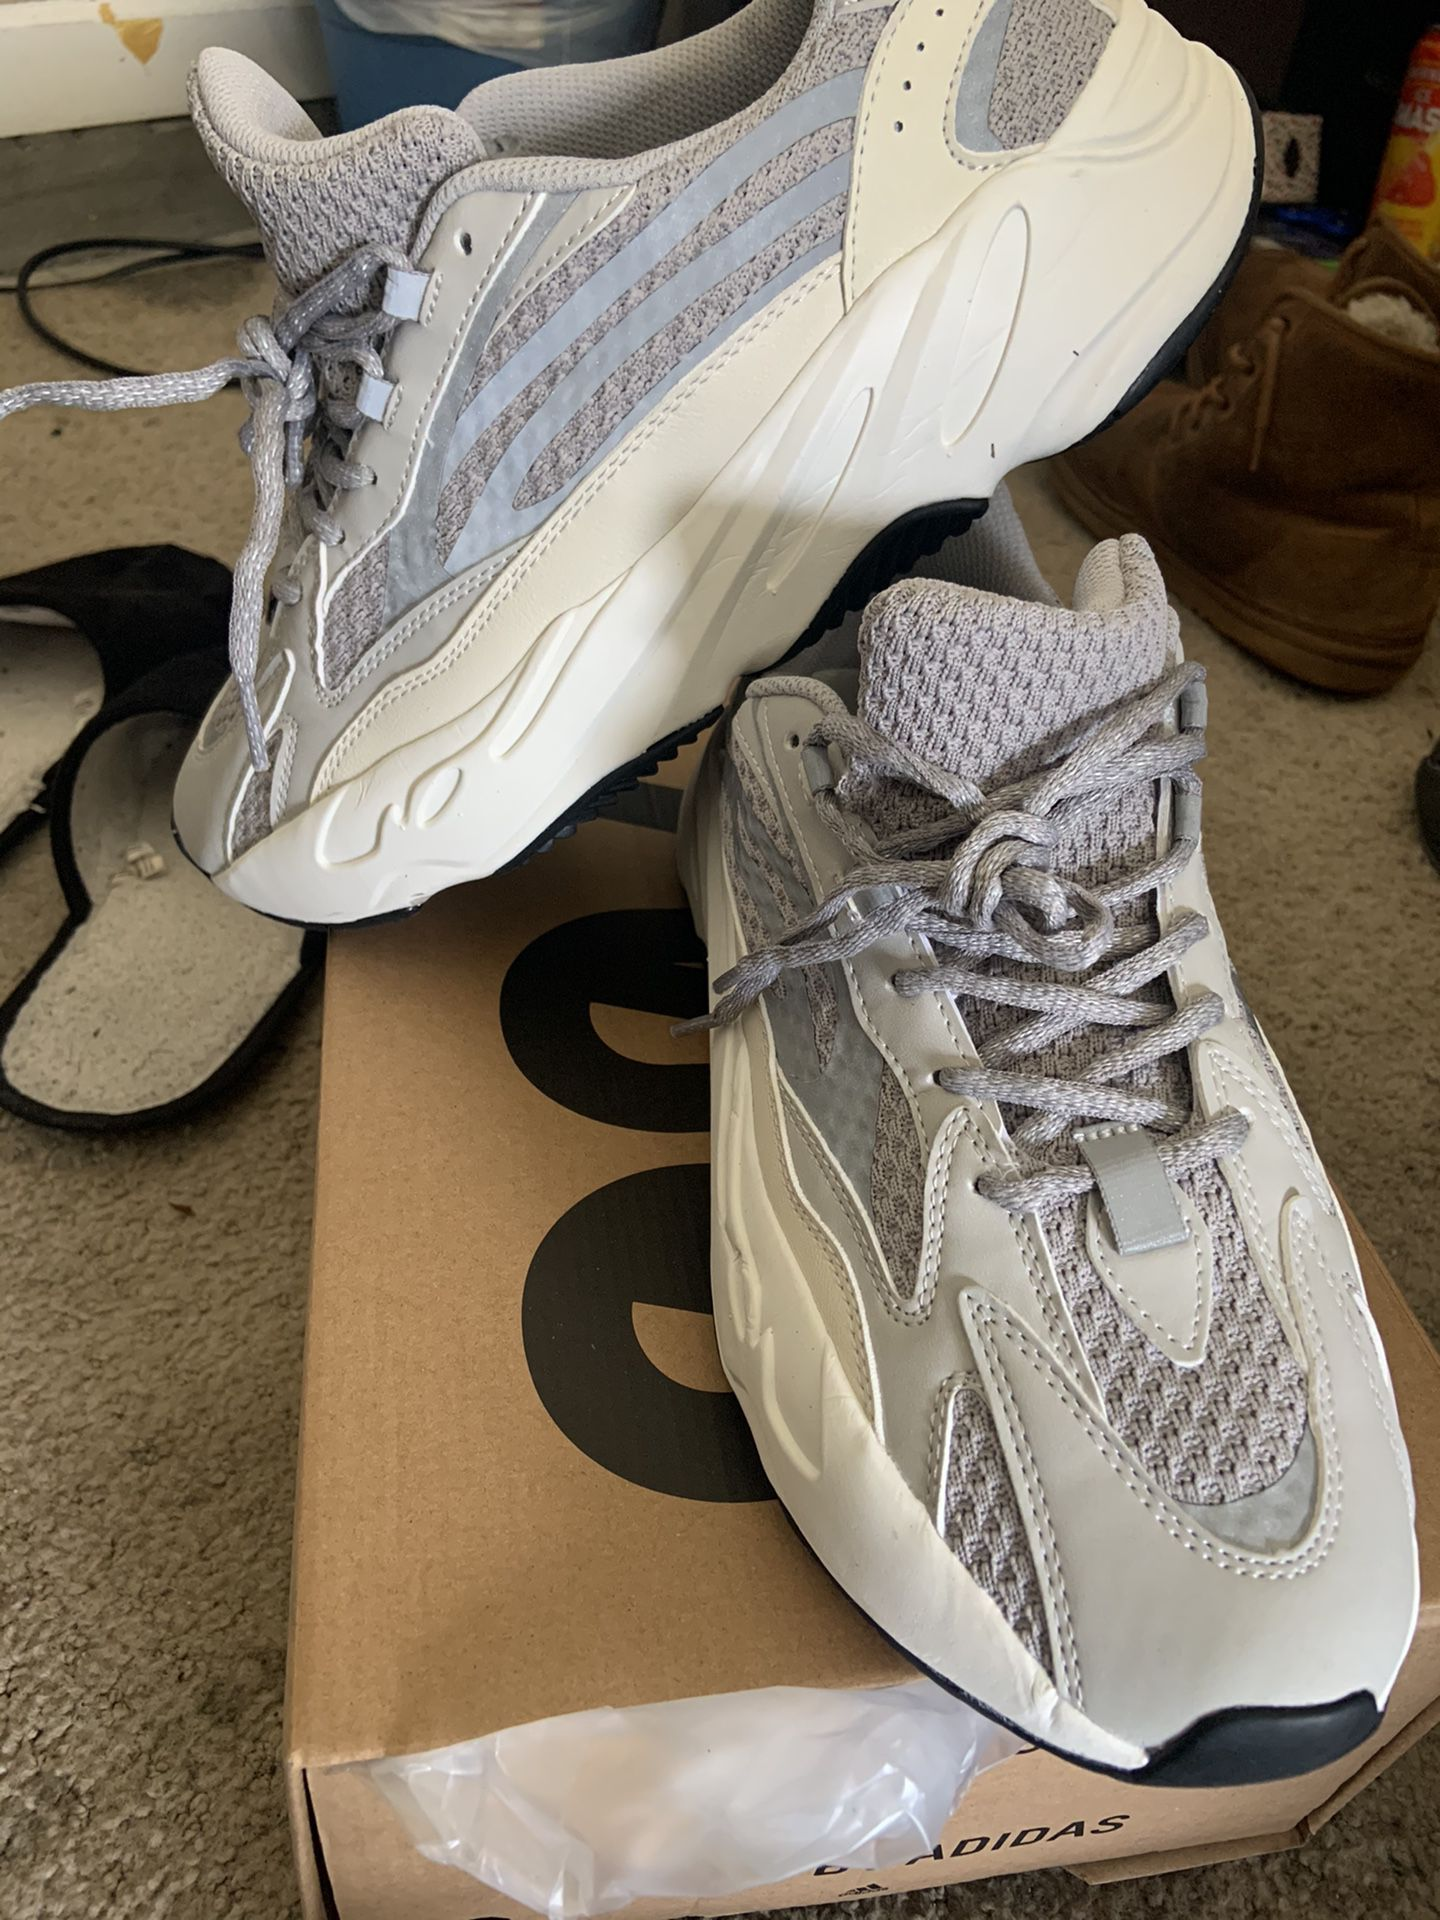 Yezzy 700 great deal buy now